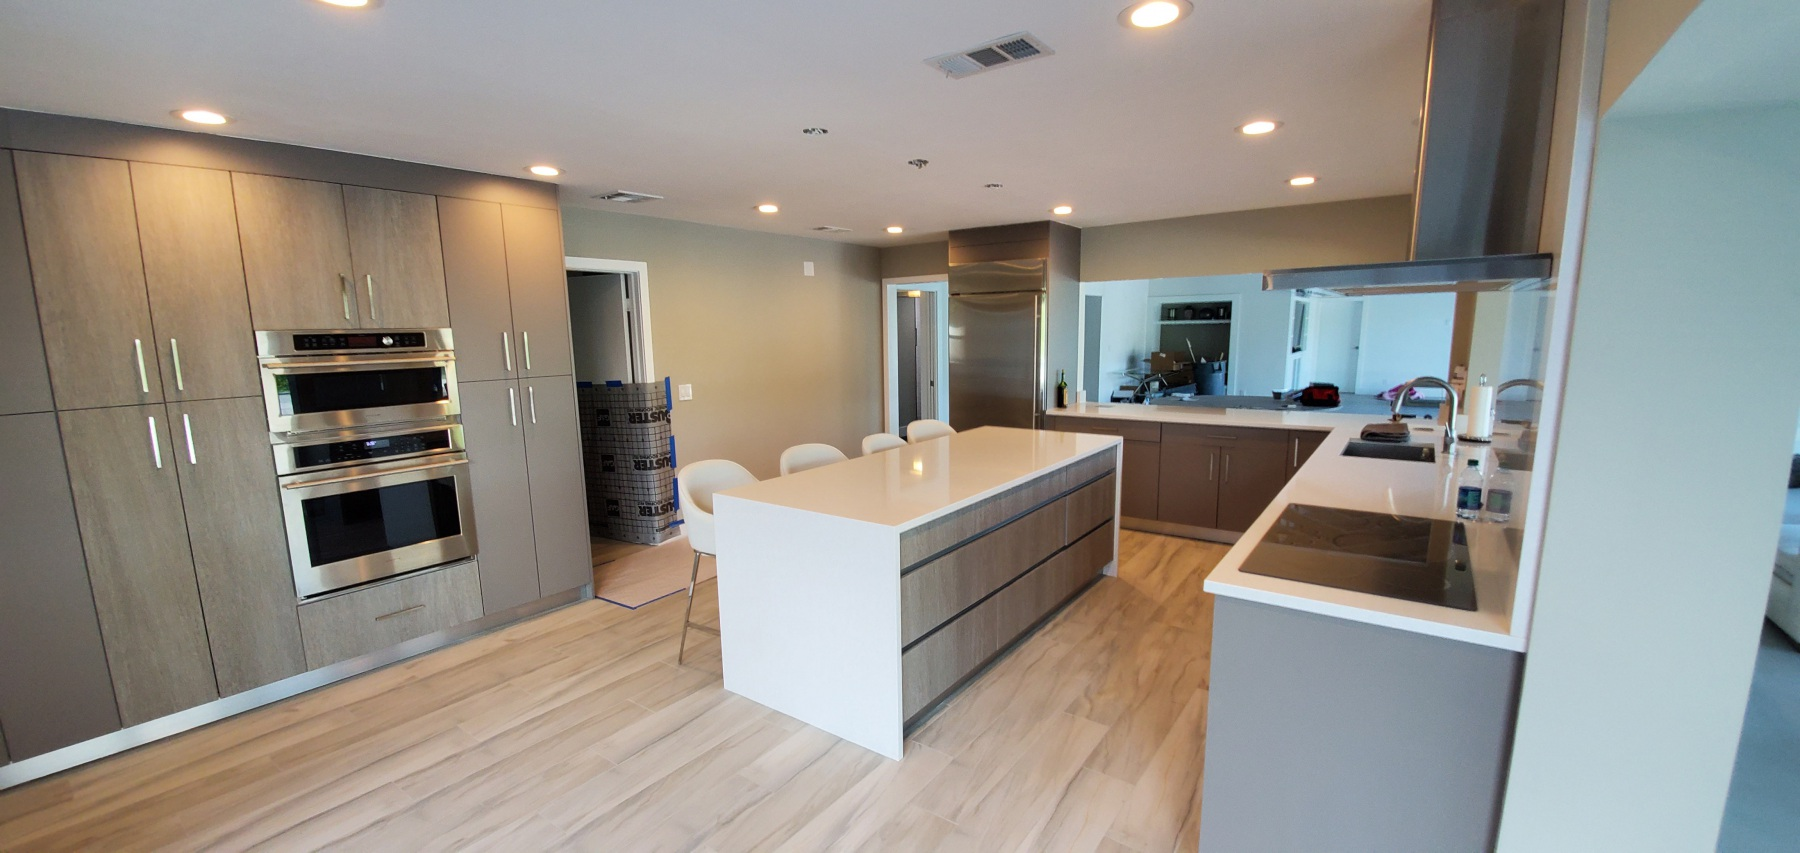 Remodeled Kitchen in Boca Raton with Modern cabinets, waterfall island, and built in double oven